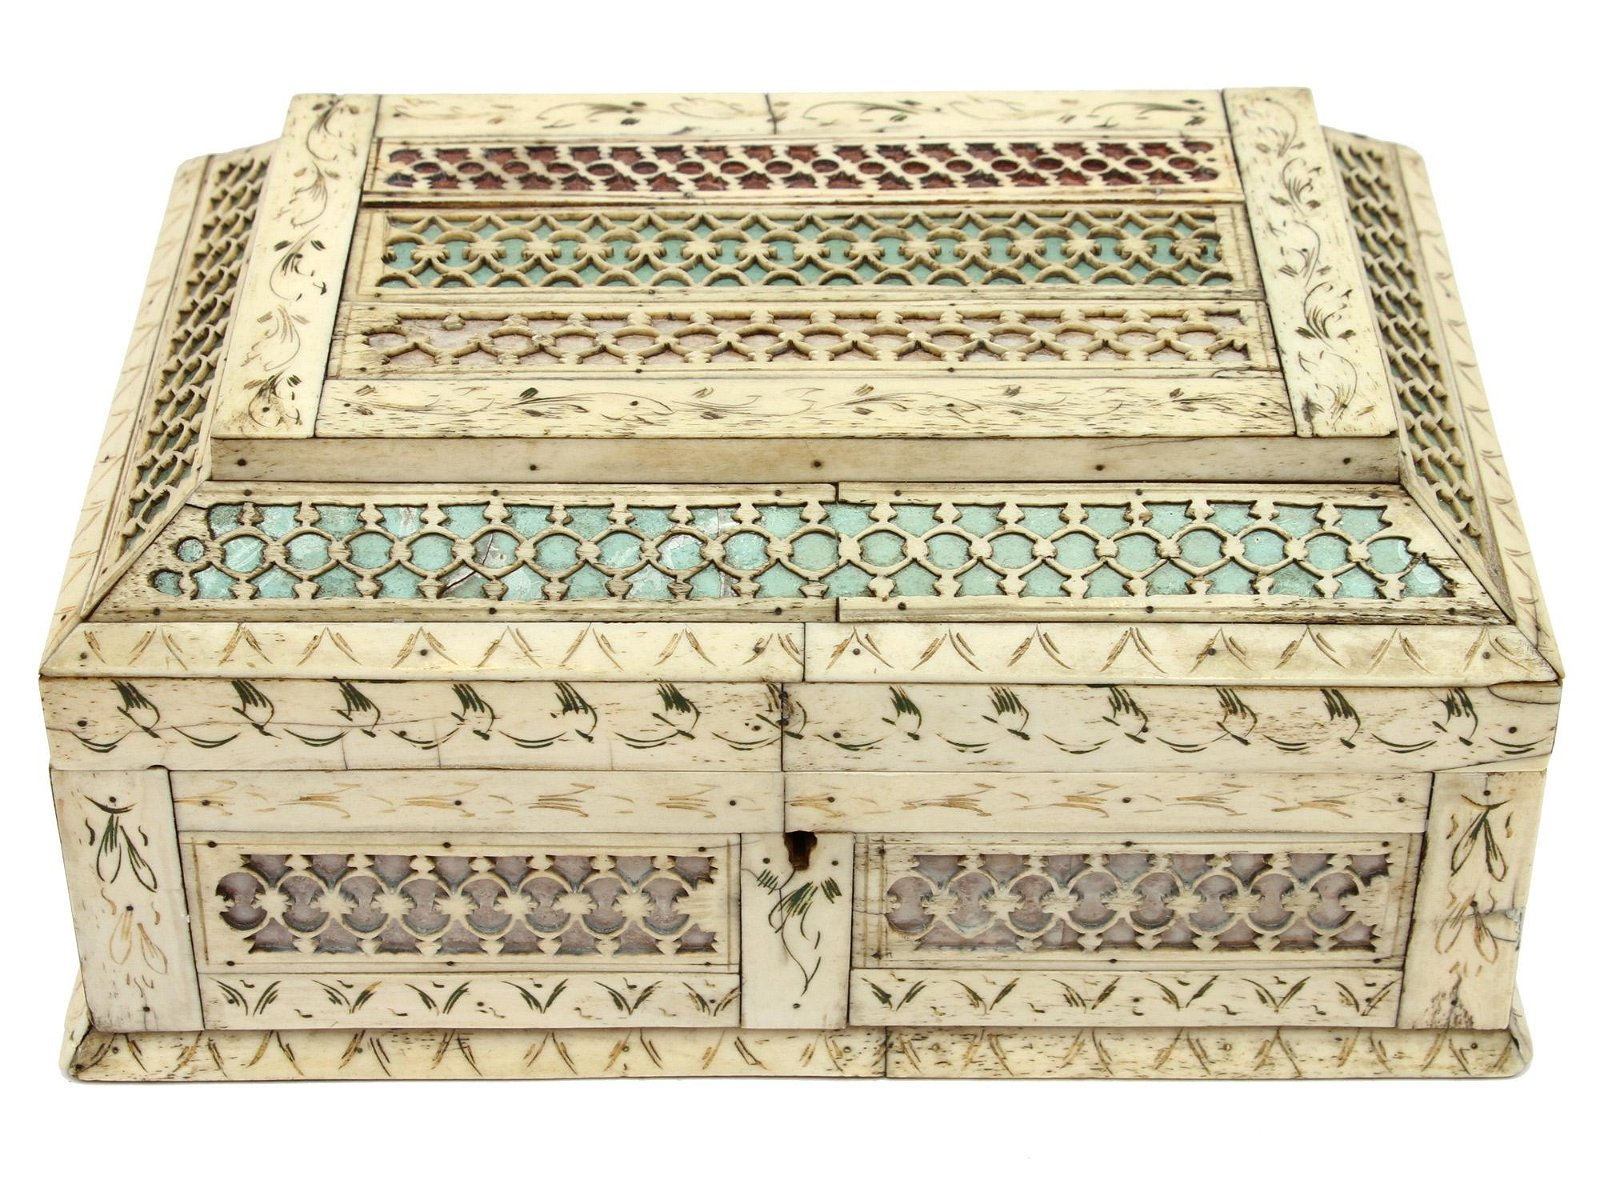 A RUSSIAN KHOLMOGORY BONE CASKET OR BOX, 18TH C.